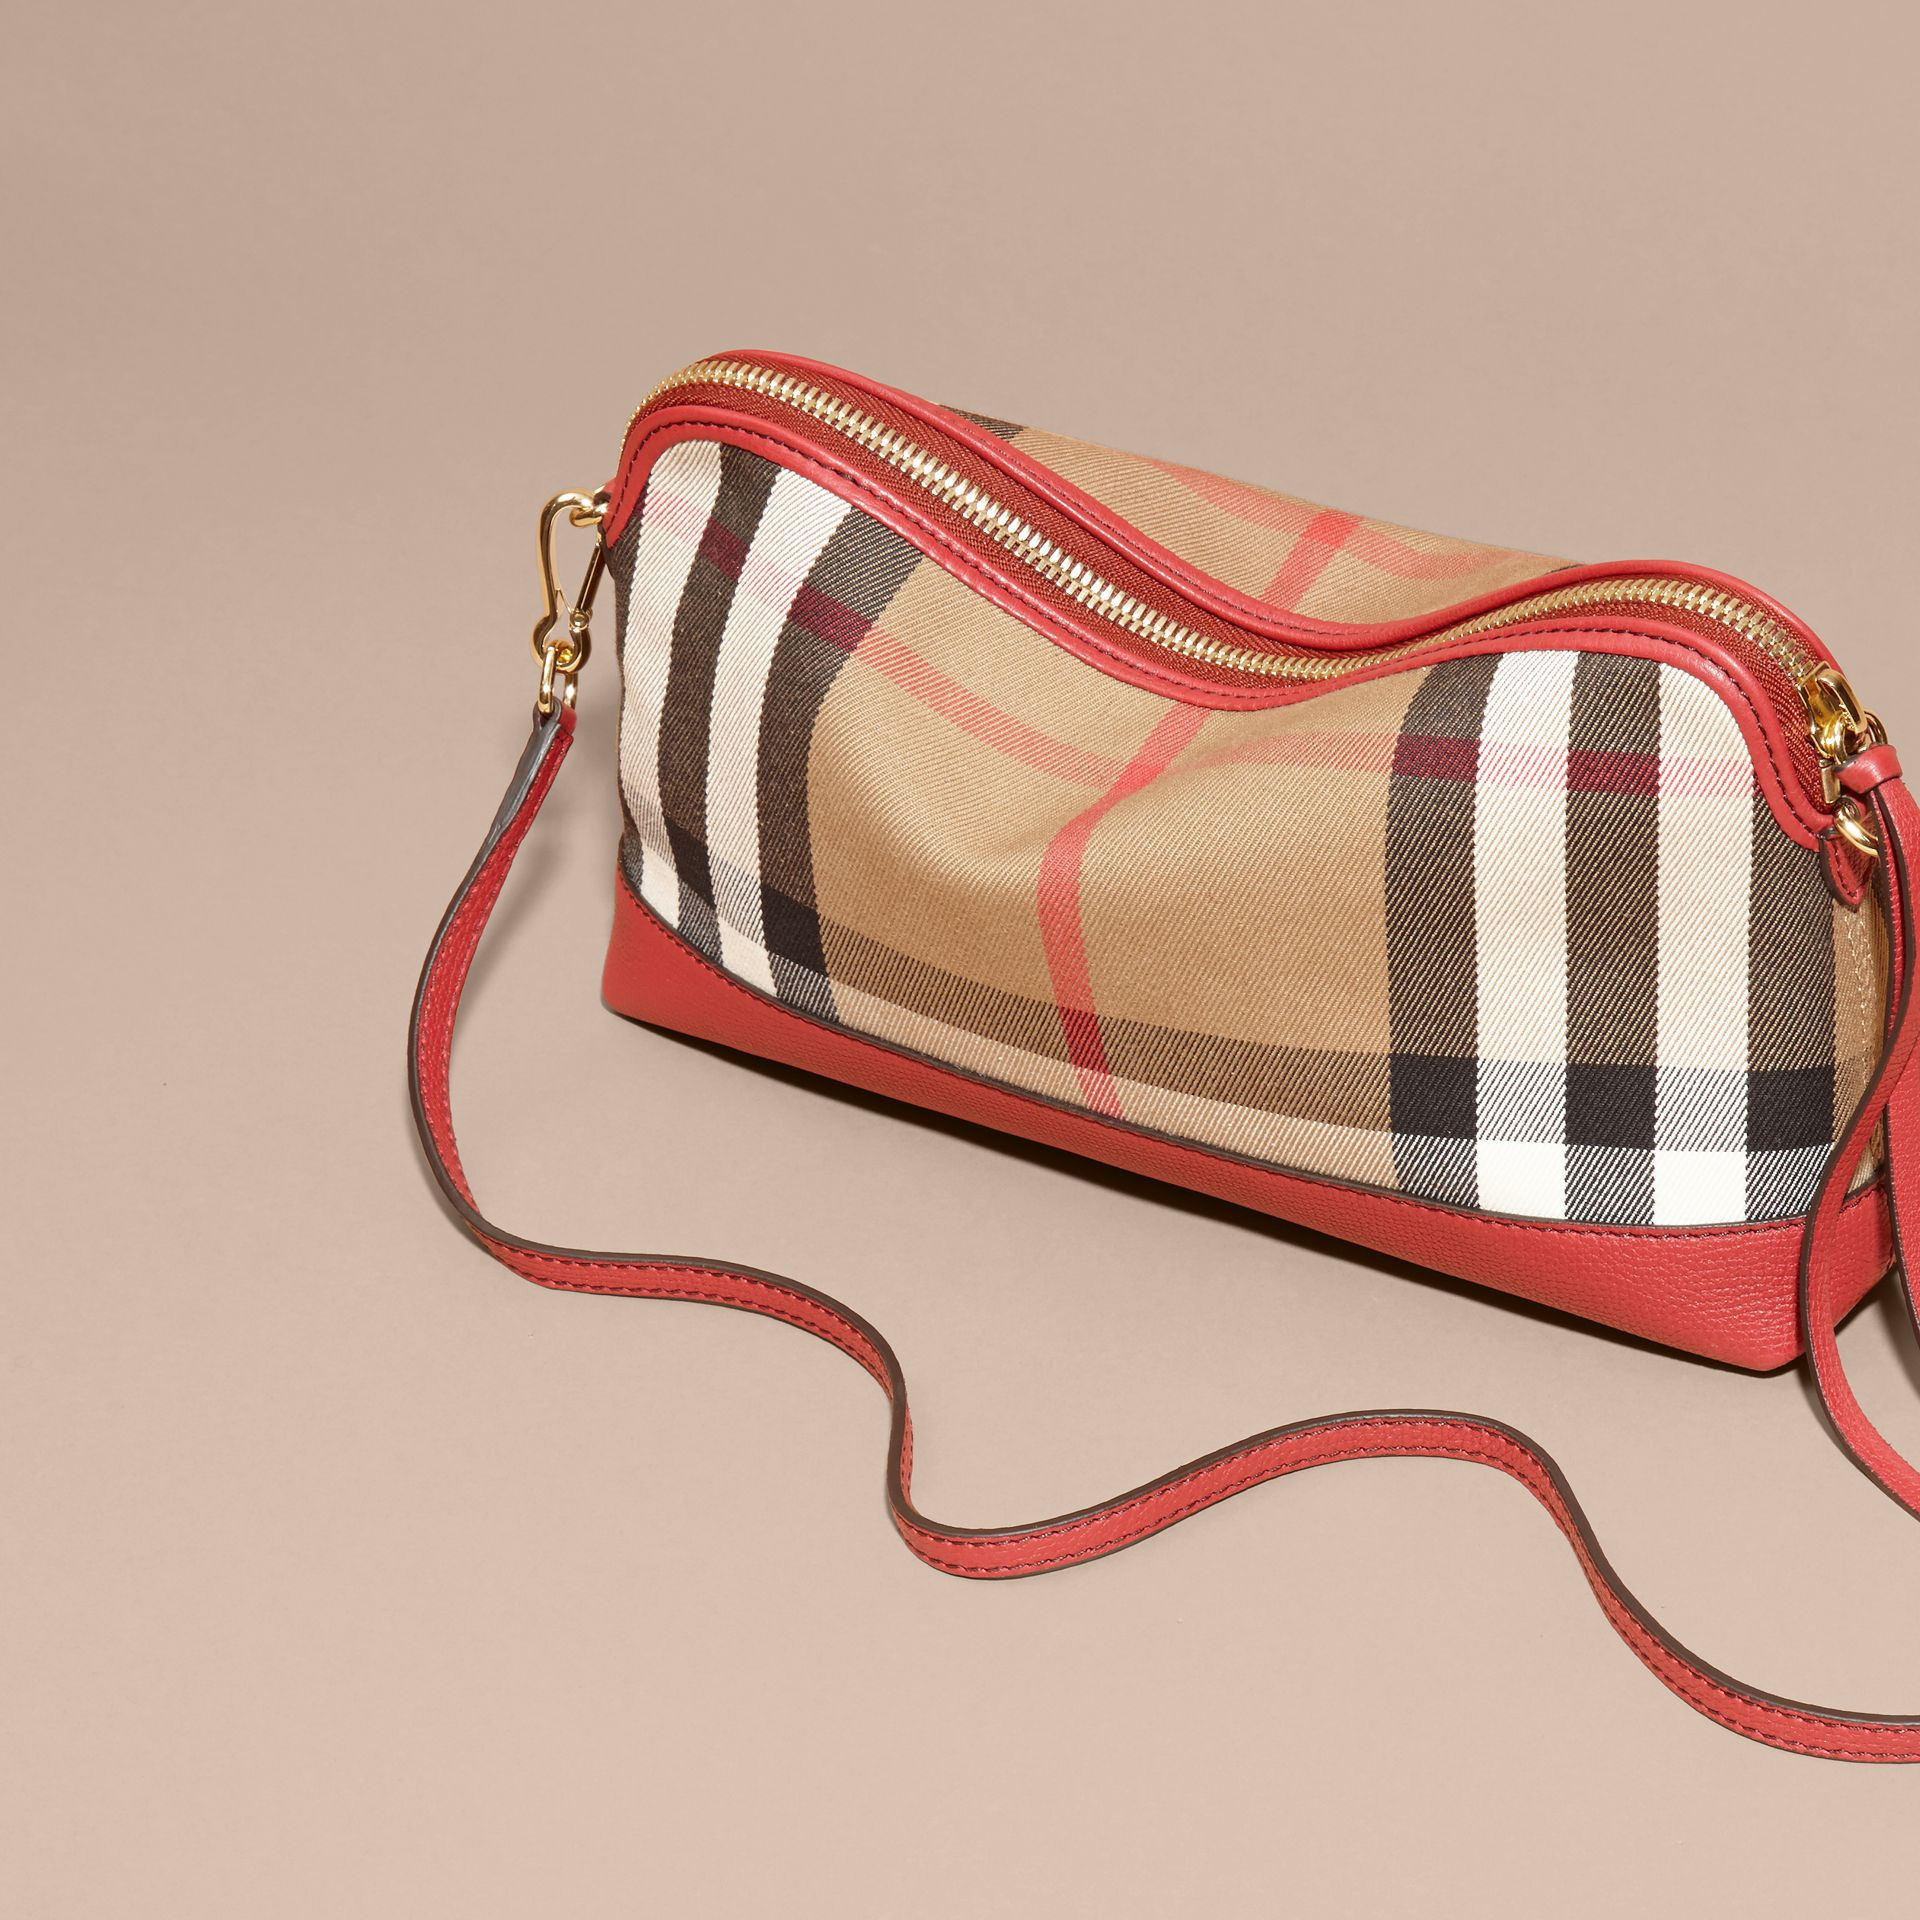 House Check and Leather Clutch Bag Russet Red - gallery image 5